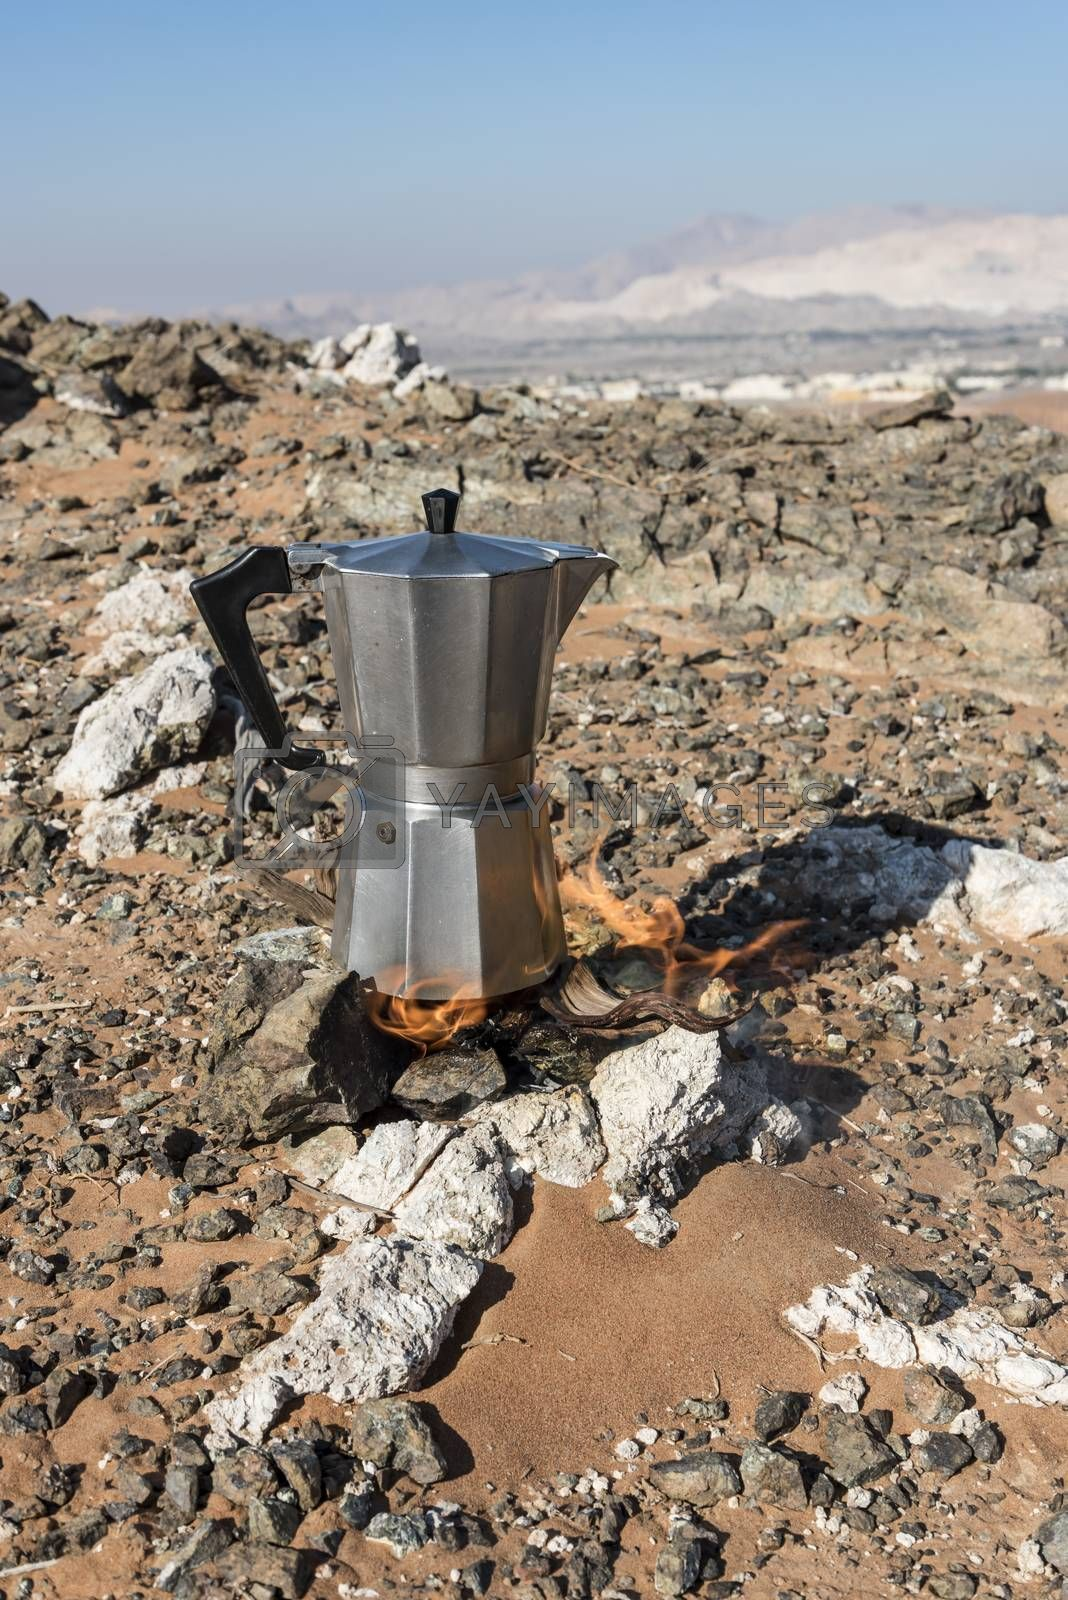 Italian Coffee maker at a fireplace in the desert